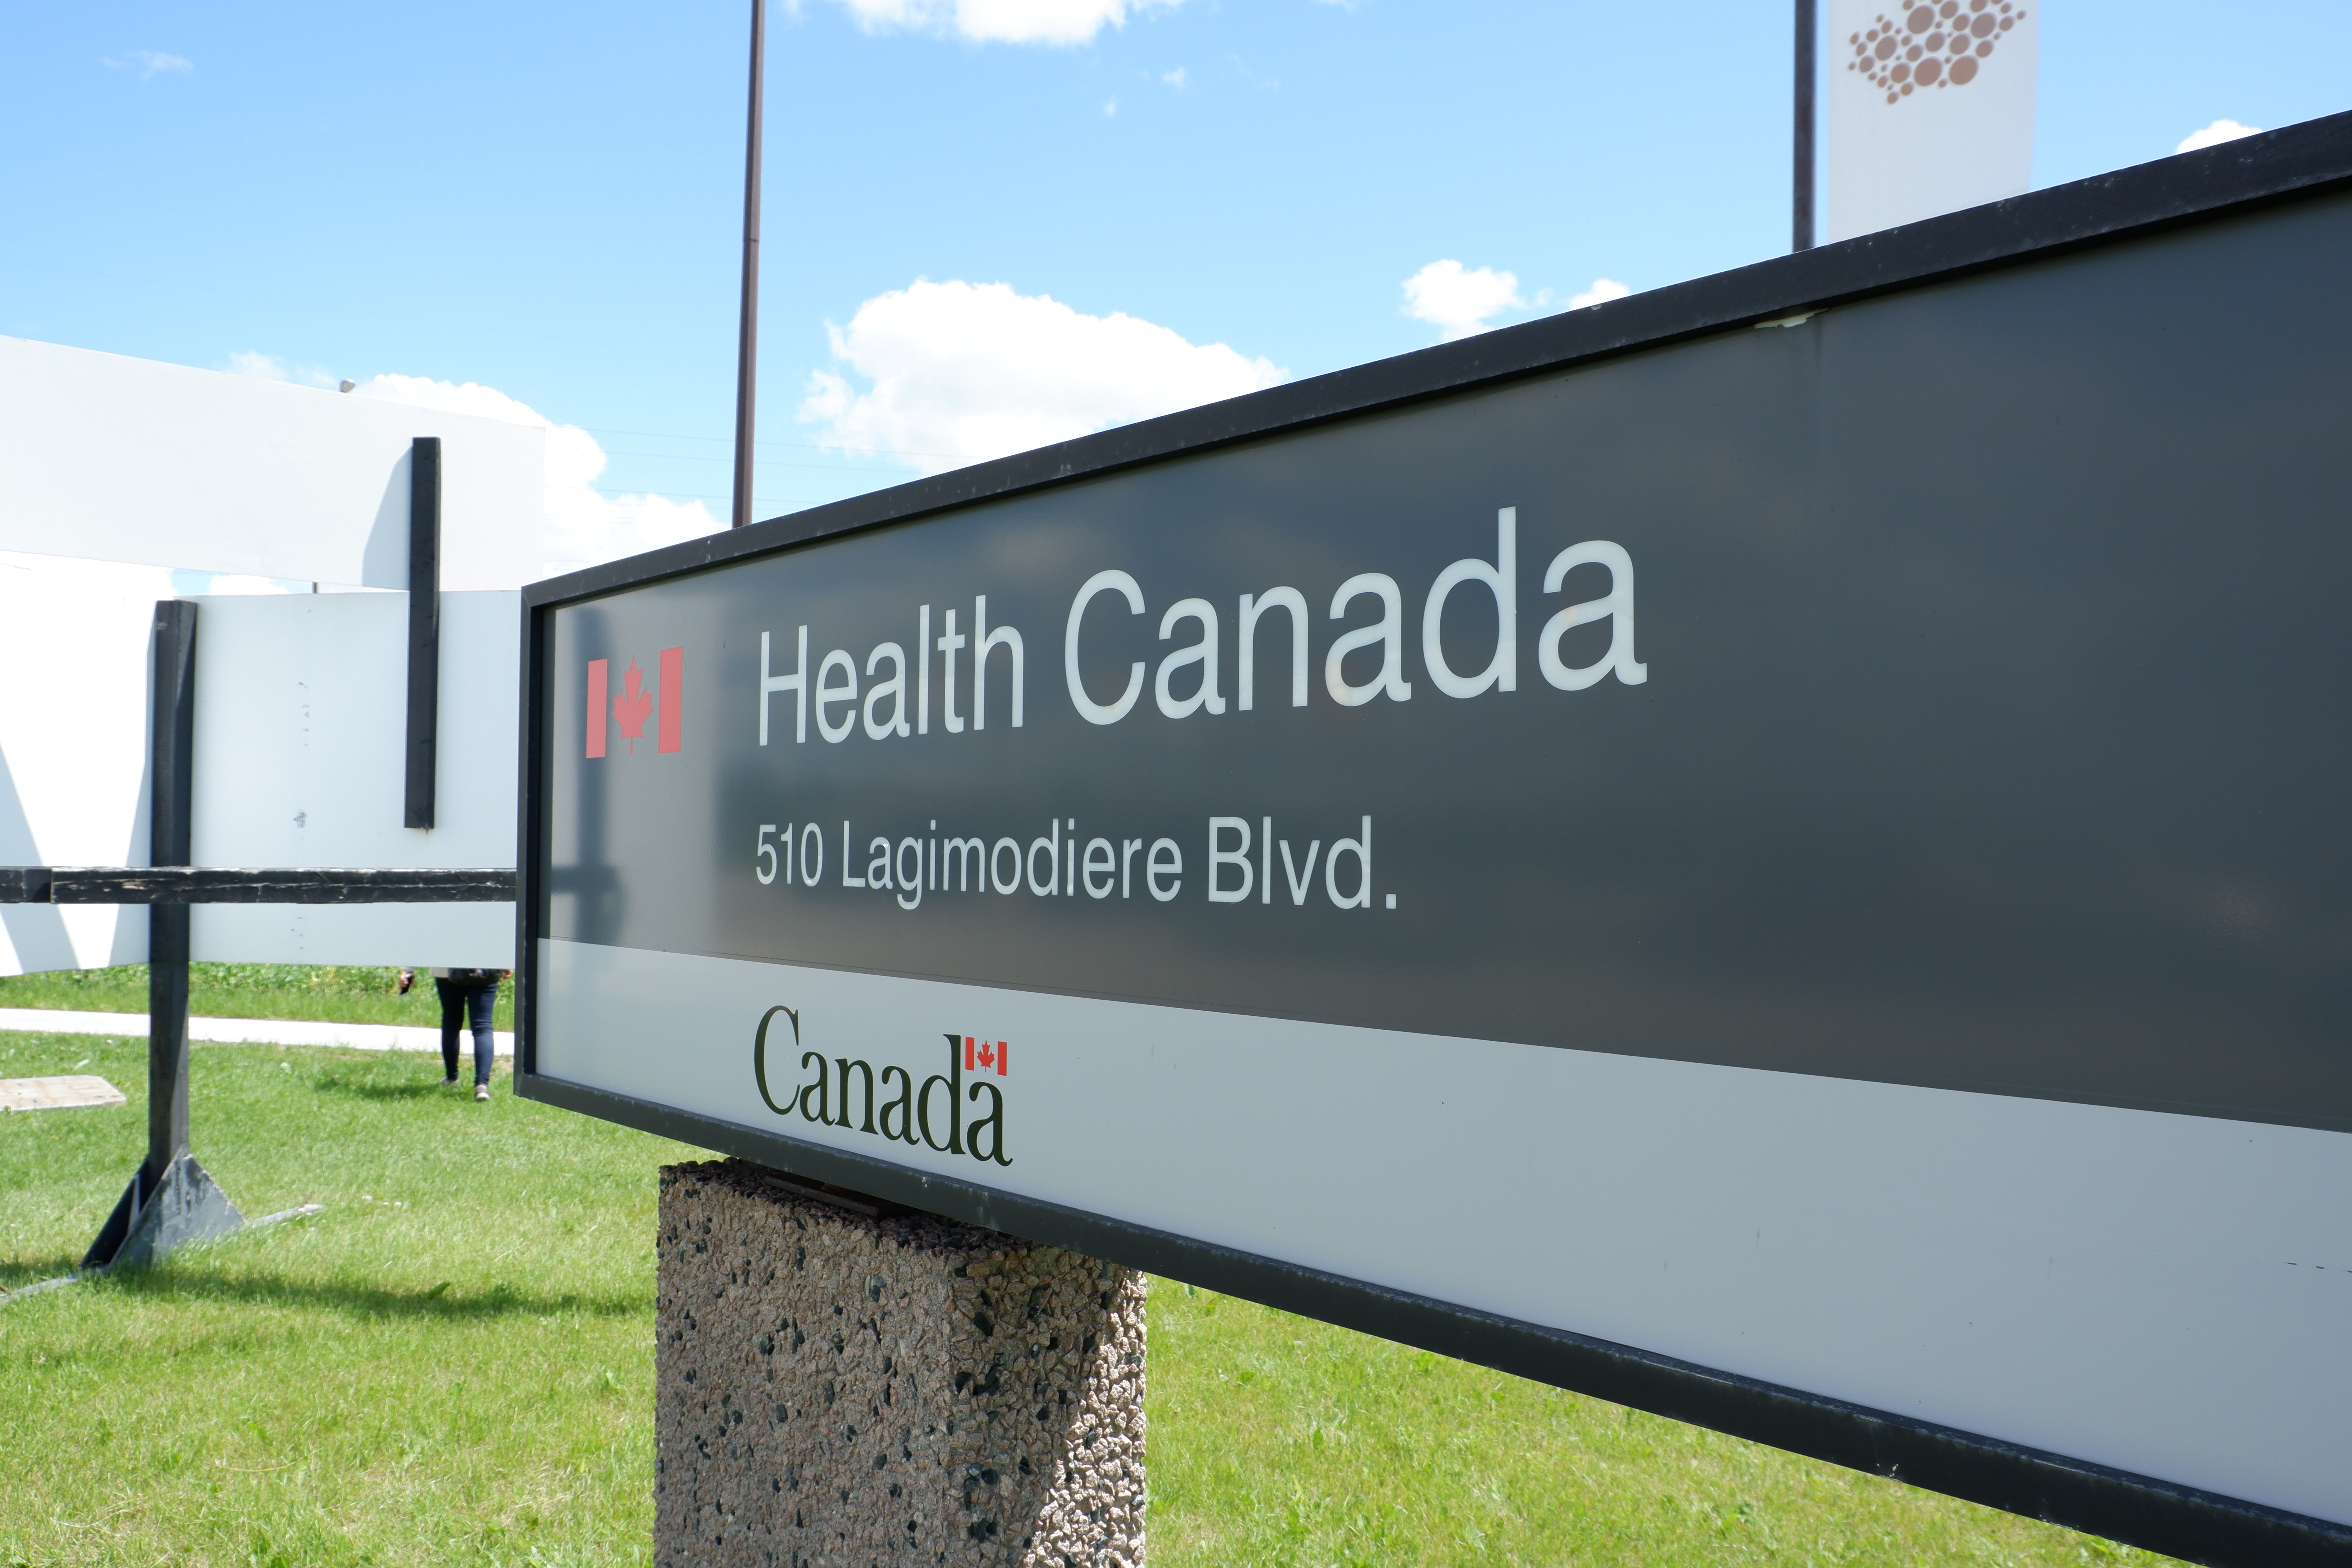 View of Health Canada board installed in lawn and in summer. Shutterstock via SBshot87